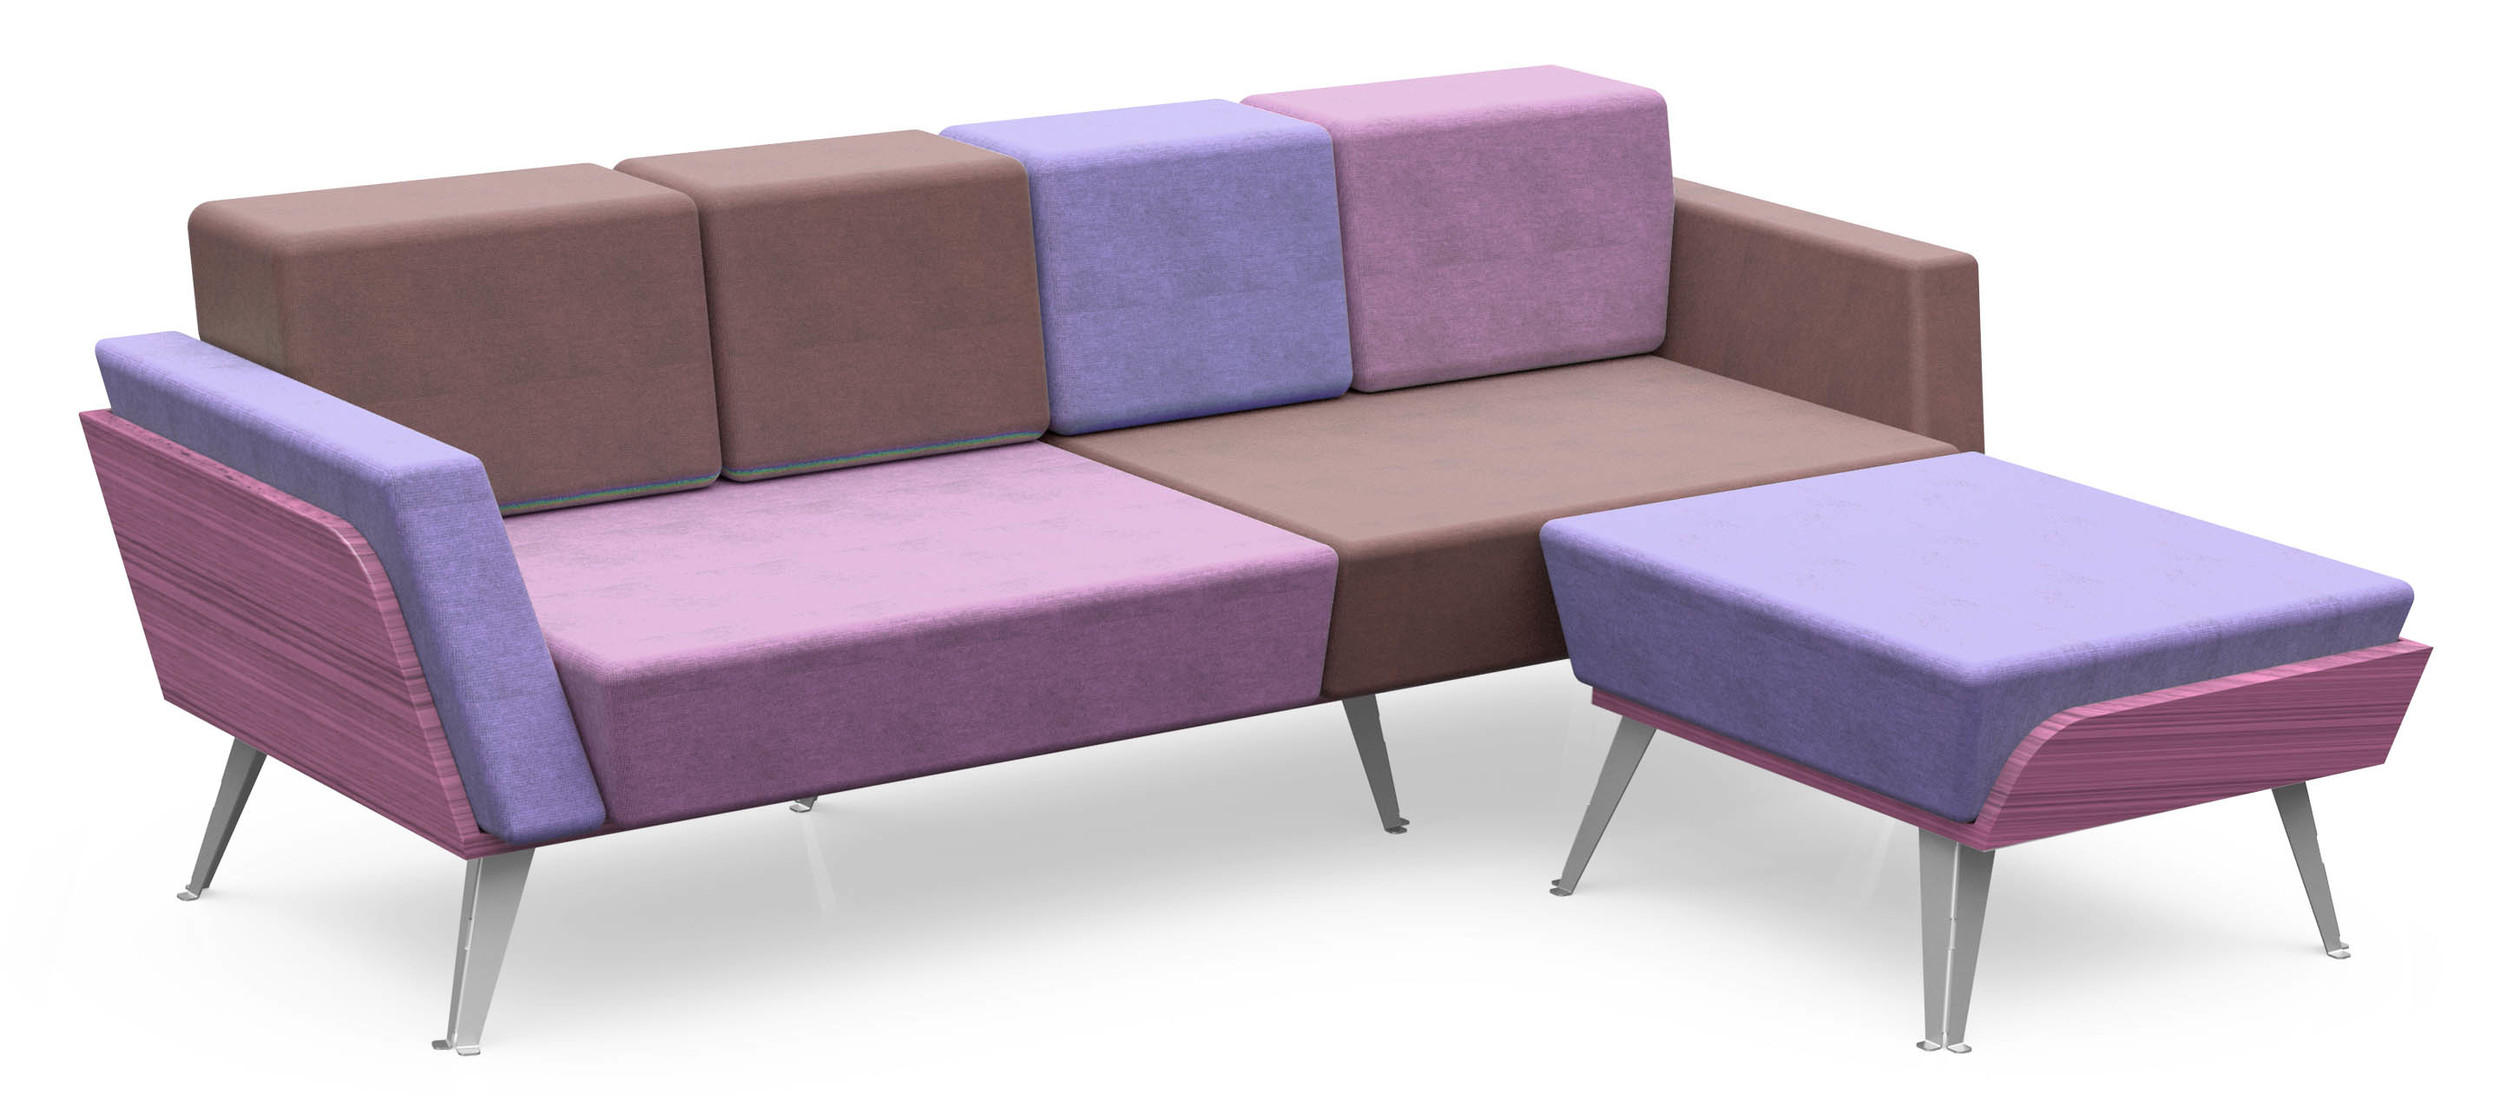 Garnitur_Sofa_Hocker_pink_2880.jpg